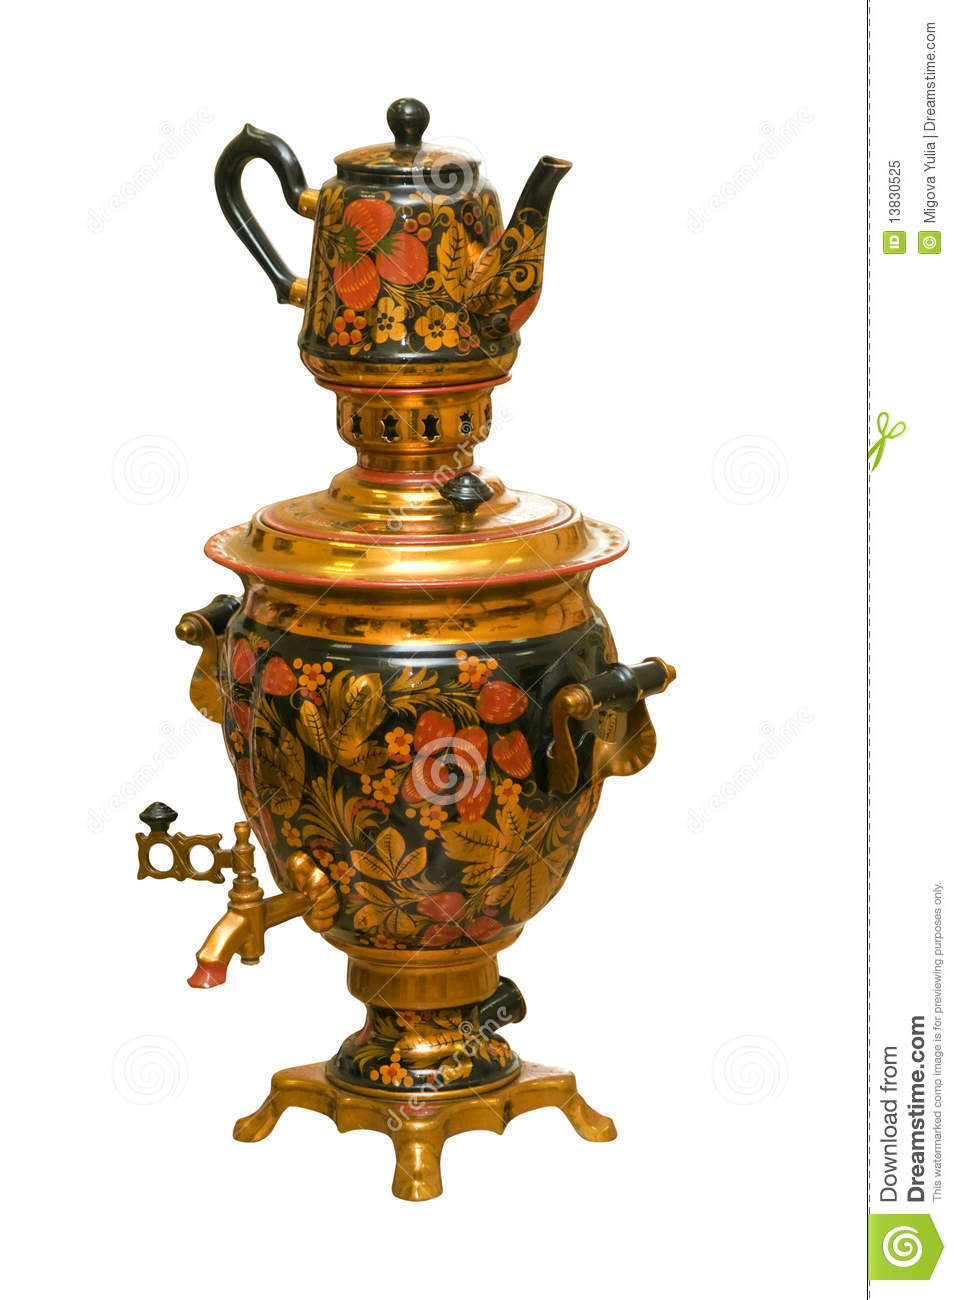 russian traditional samovar and teapot royalty stock photo russian traditional samovar and teapot